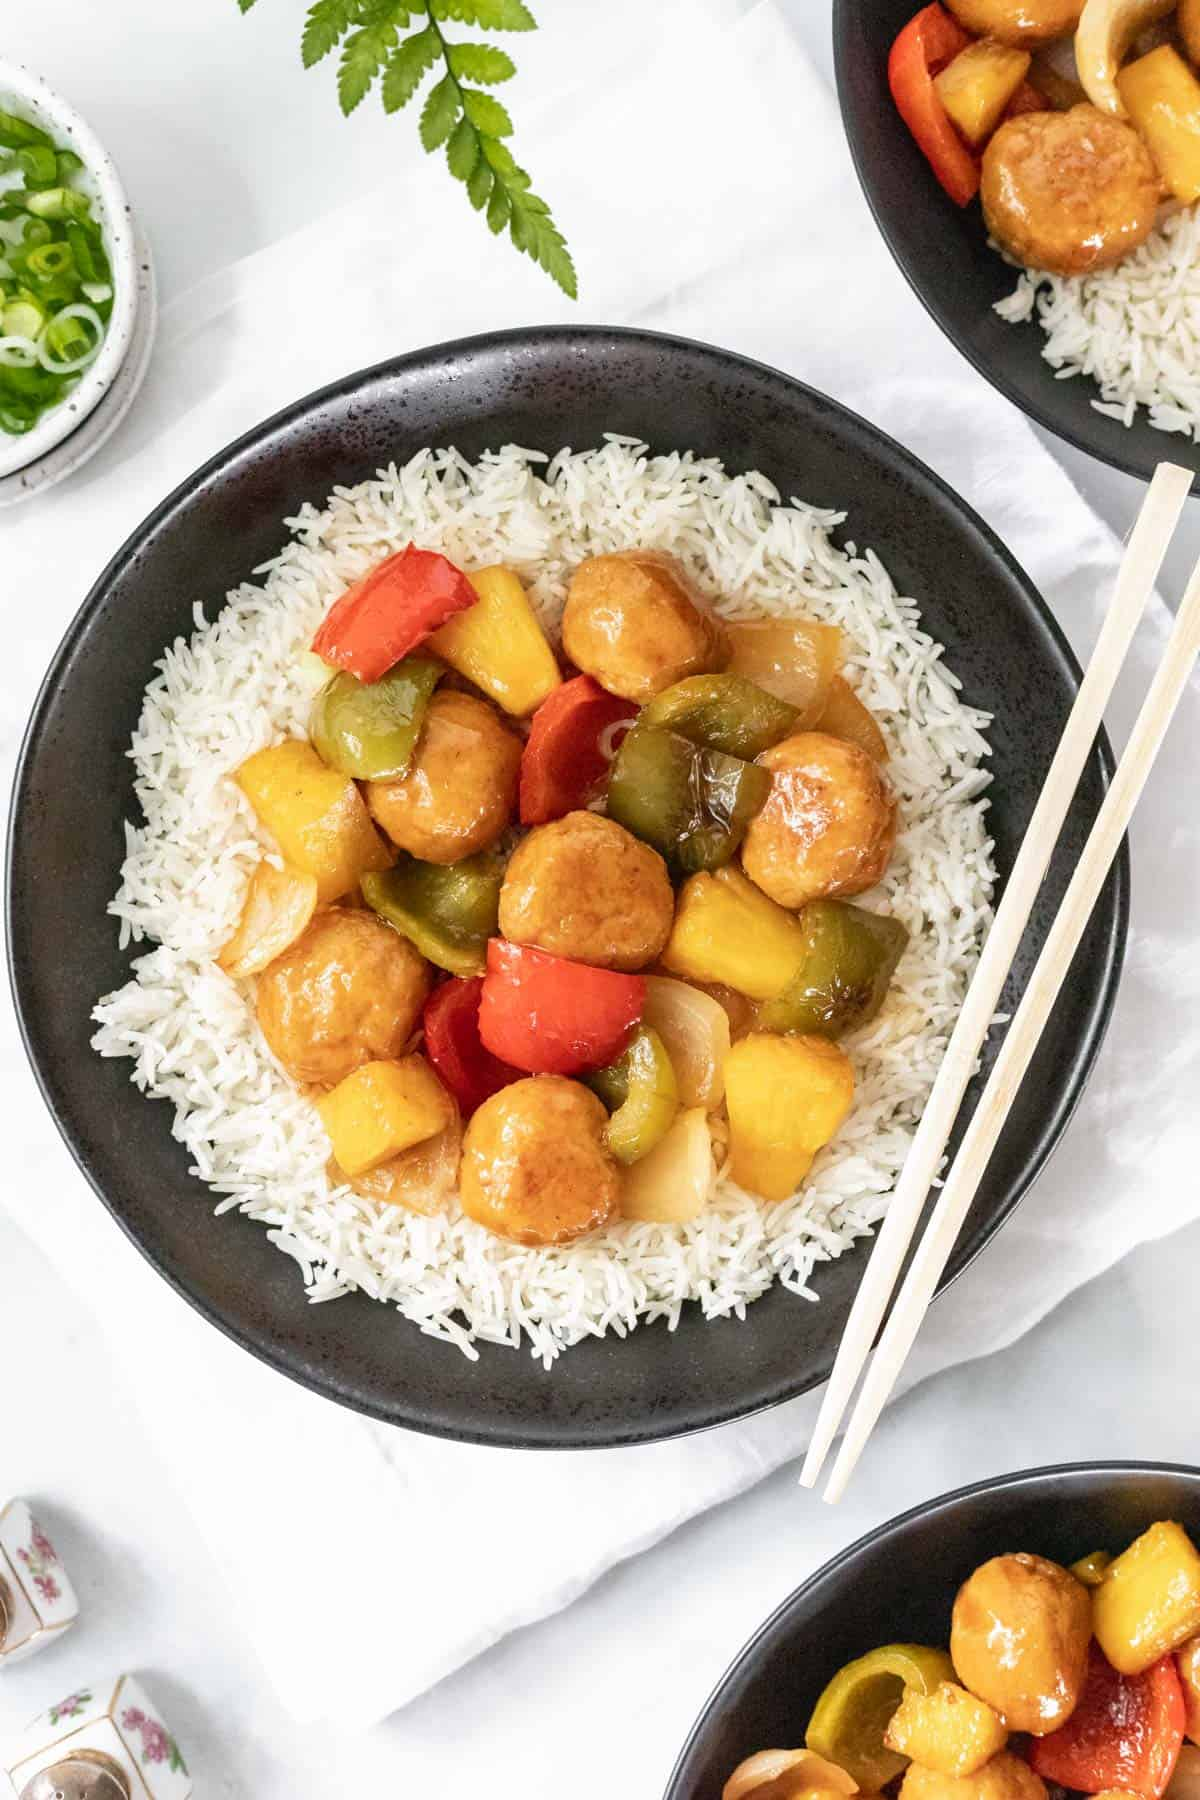 Sweet and sour pineapple chicken meatballs on a bed of white rice in a black bowl with chopsticks.